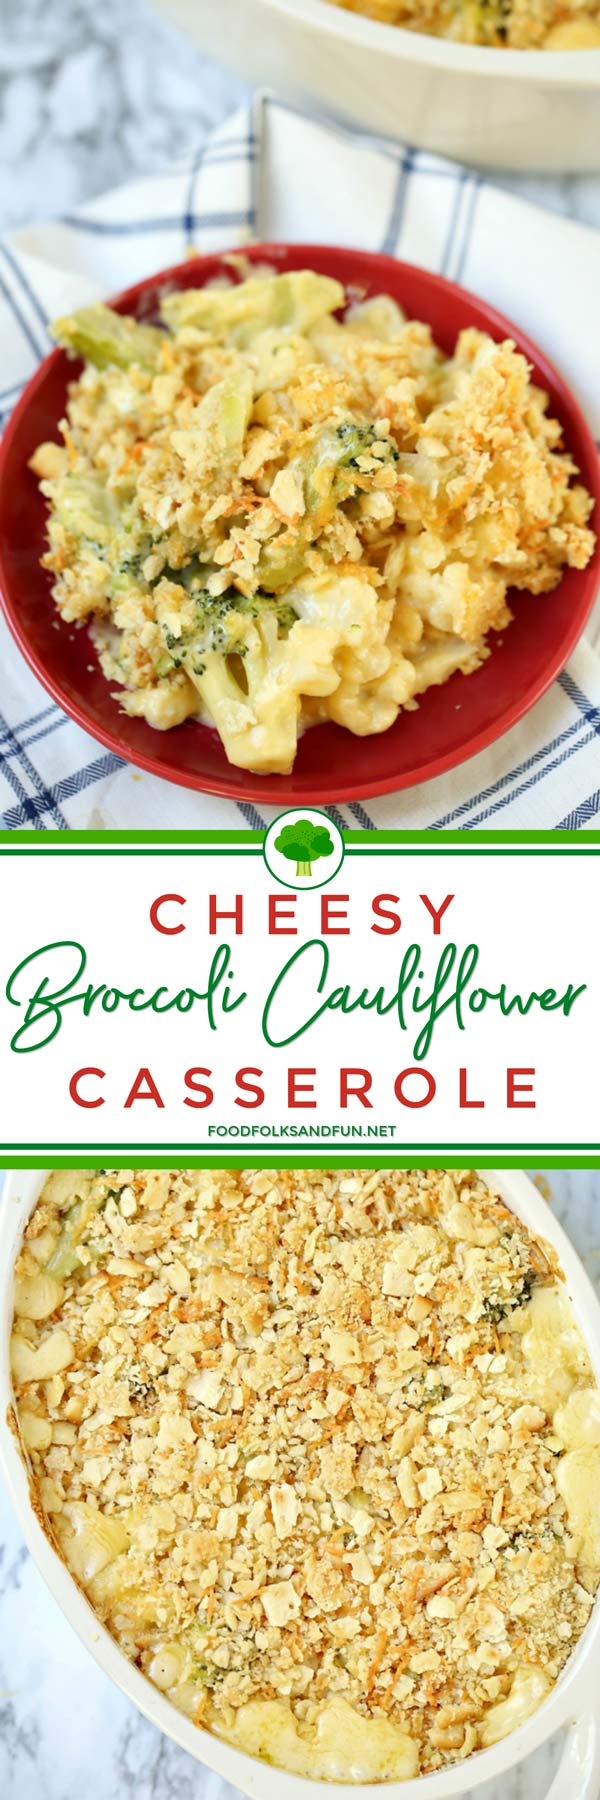 This Cheesy Broccoli Cauliflower Casserole is not only delicious but super quick & easy to make, too! Whether you're hosting Thanksgiving or need a side dish to bring, this recipe will be a great addition to any Thanksgiving dinner! via @foodfolksandfun